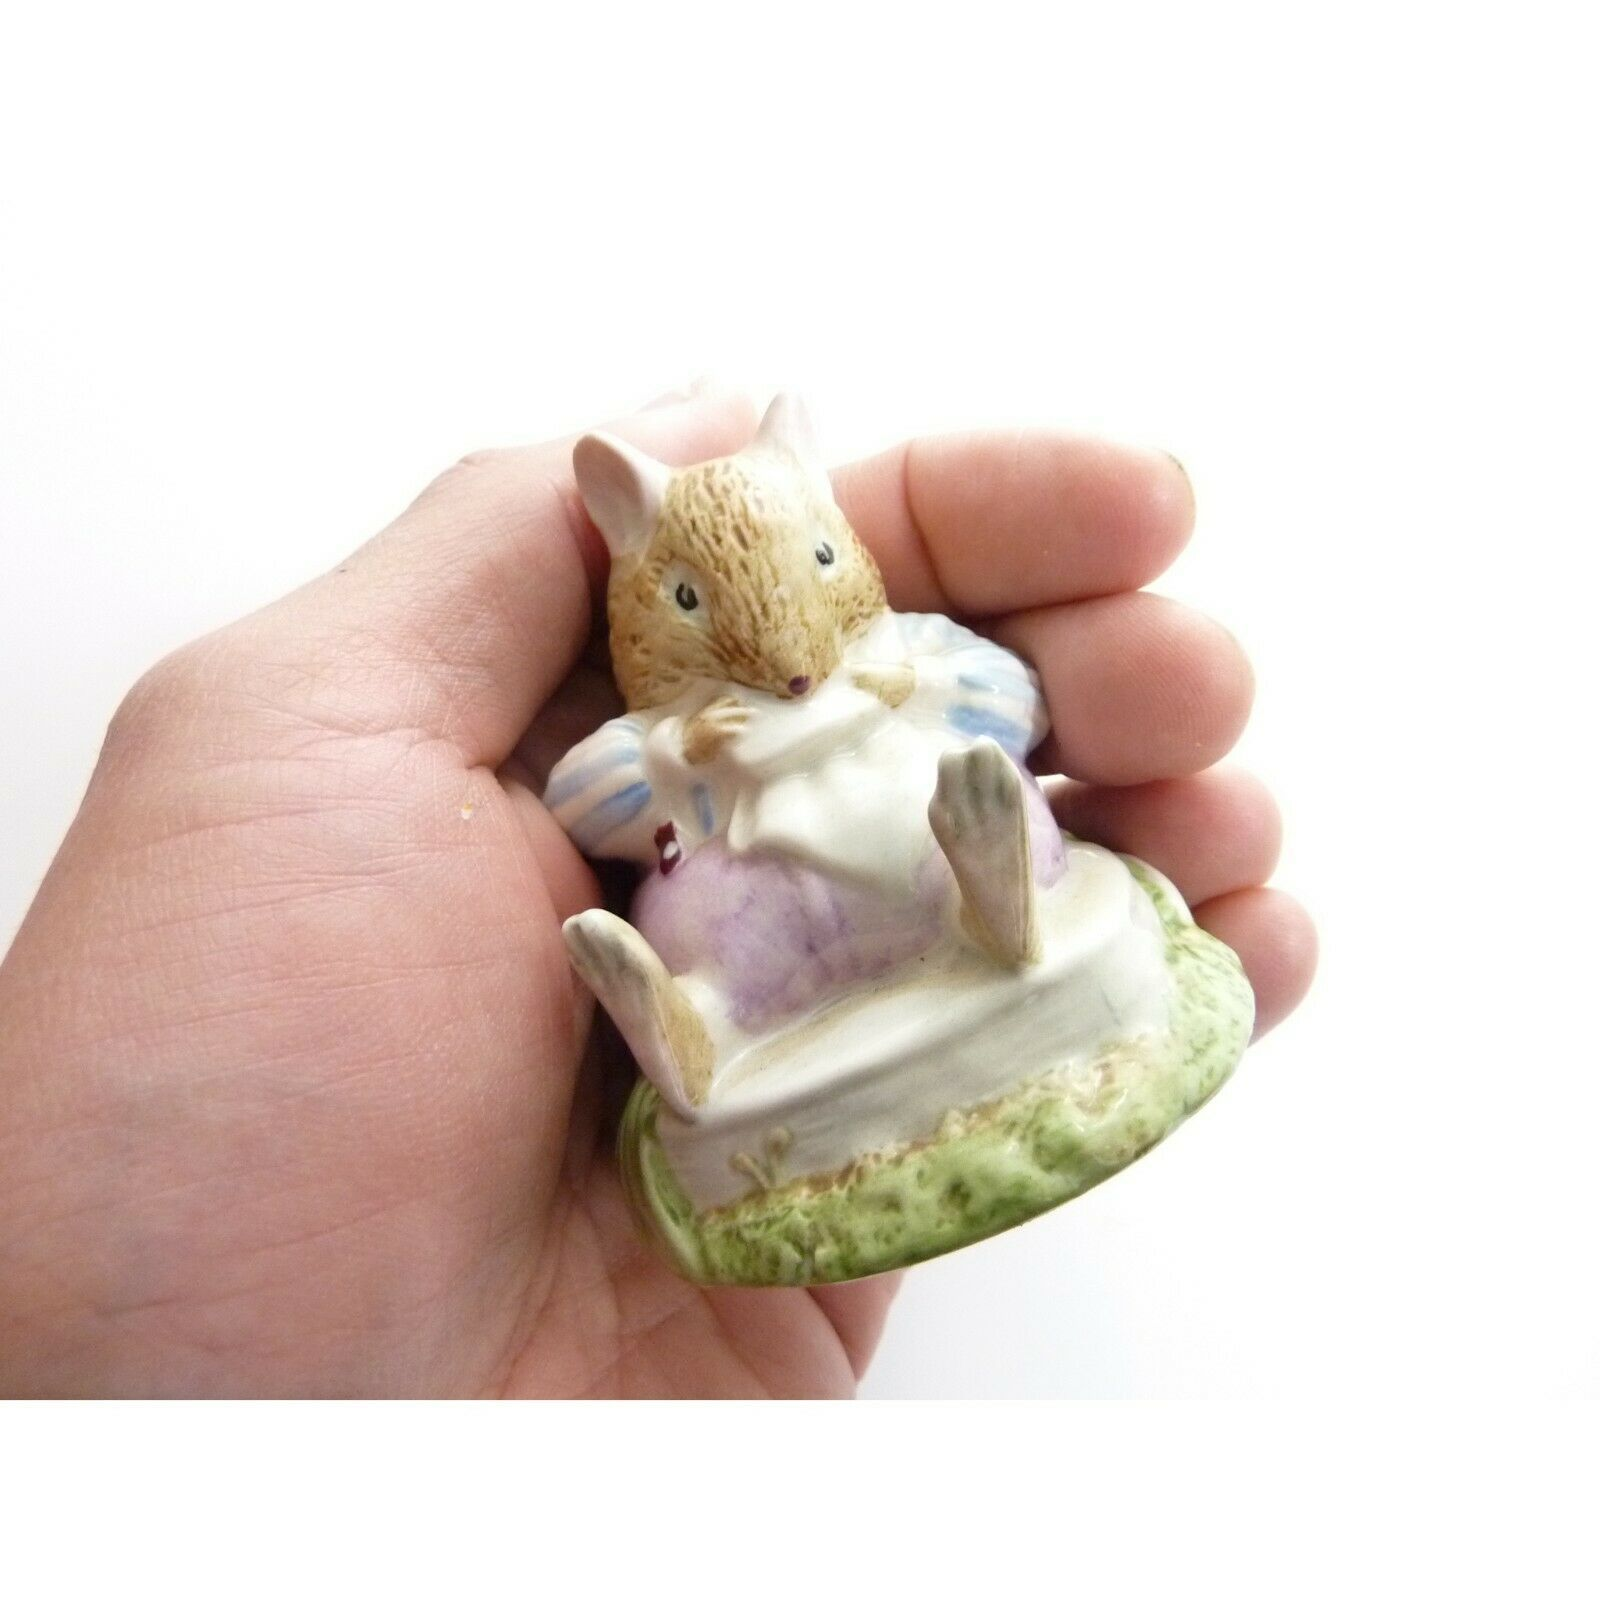 Vintage Mr Toadflax, no cushion, tail on side Royal Doulton figurine image 5